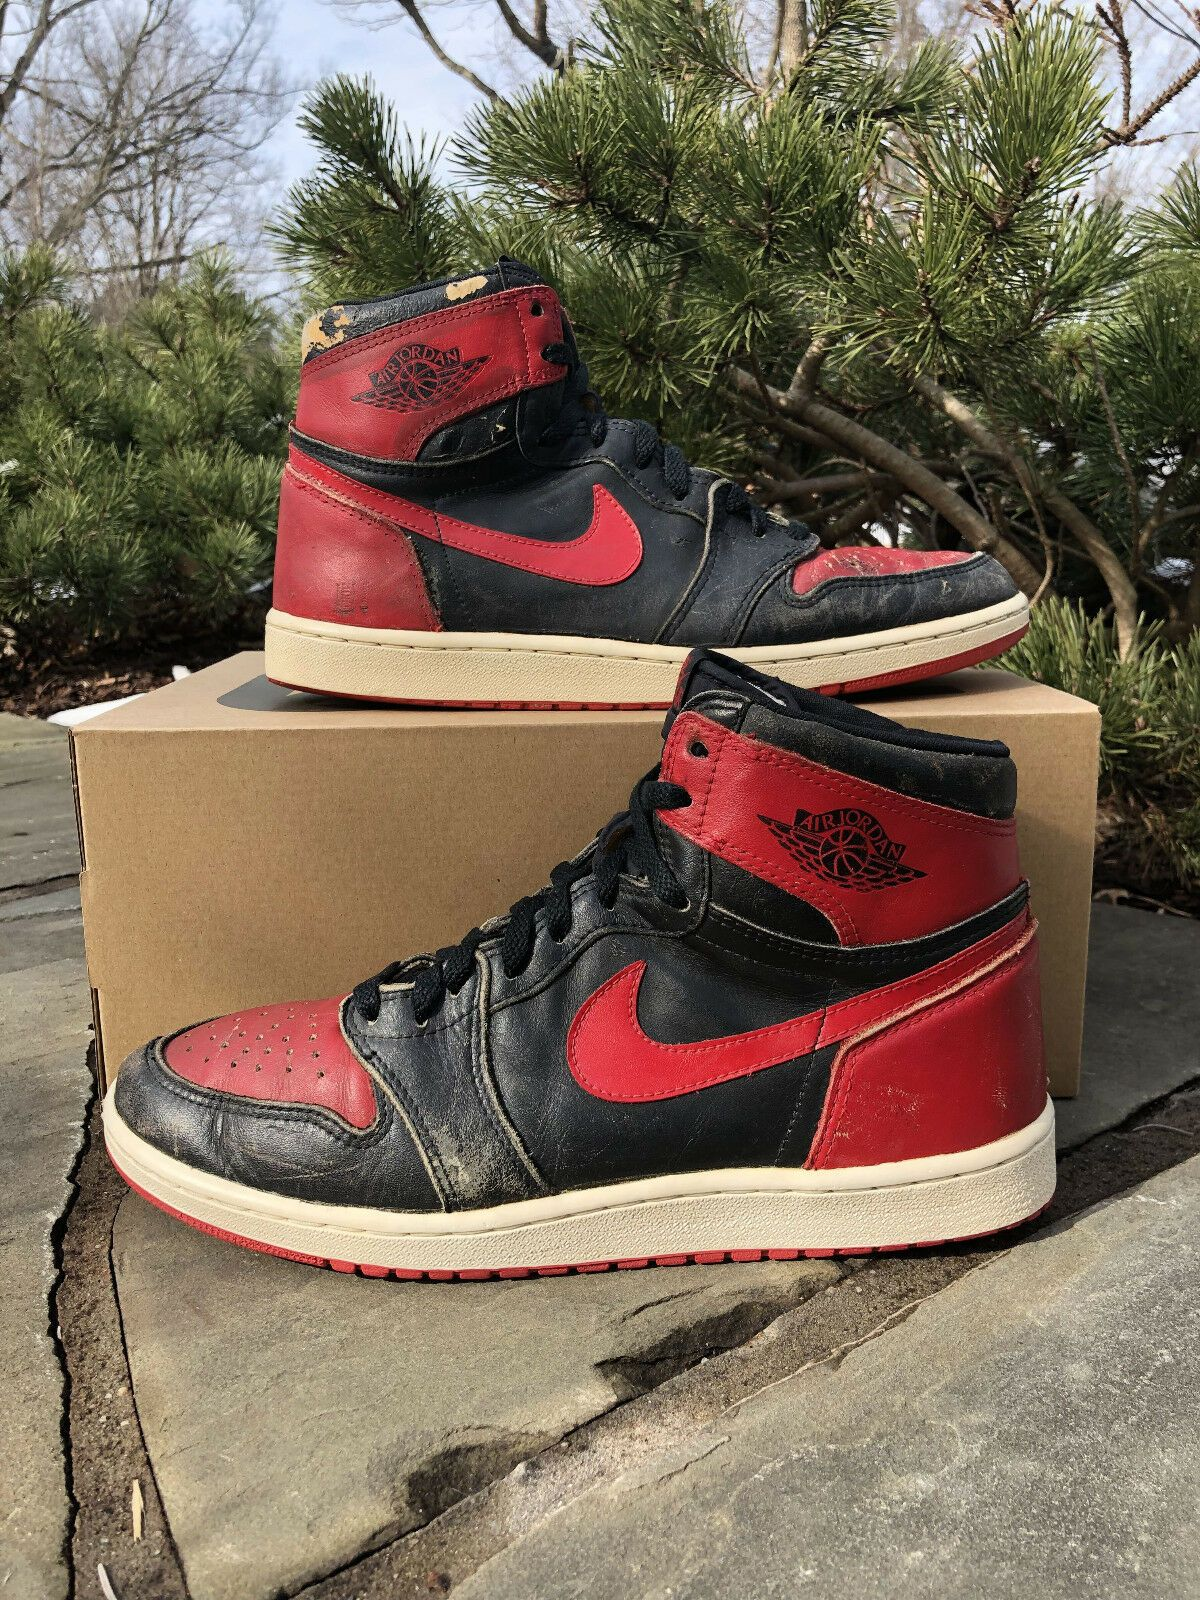 c2fca9f26b56df 1985 Nike Air Jordan 1 OG Bred Size 11.5 Orginal Vintage Black Red Banned  Korea